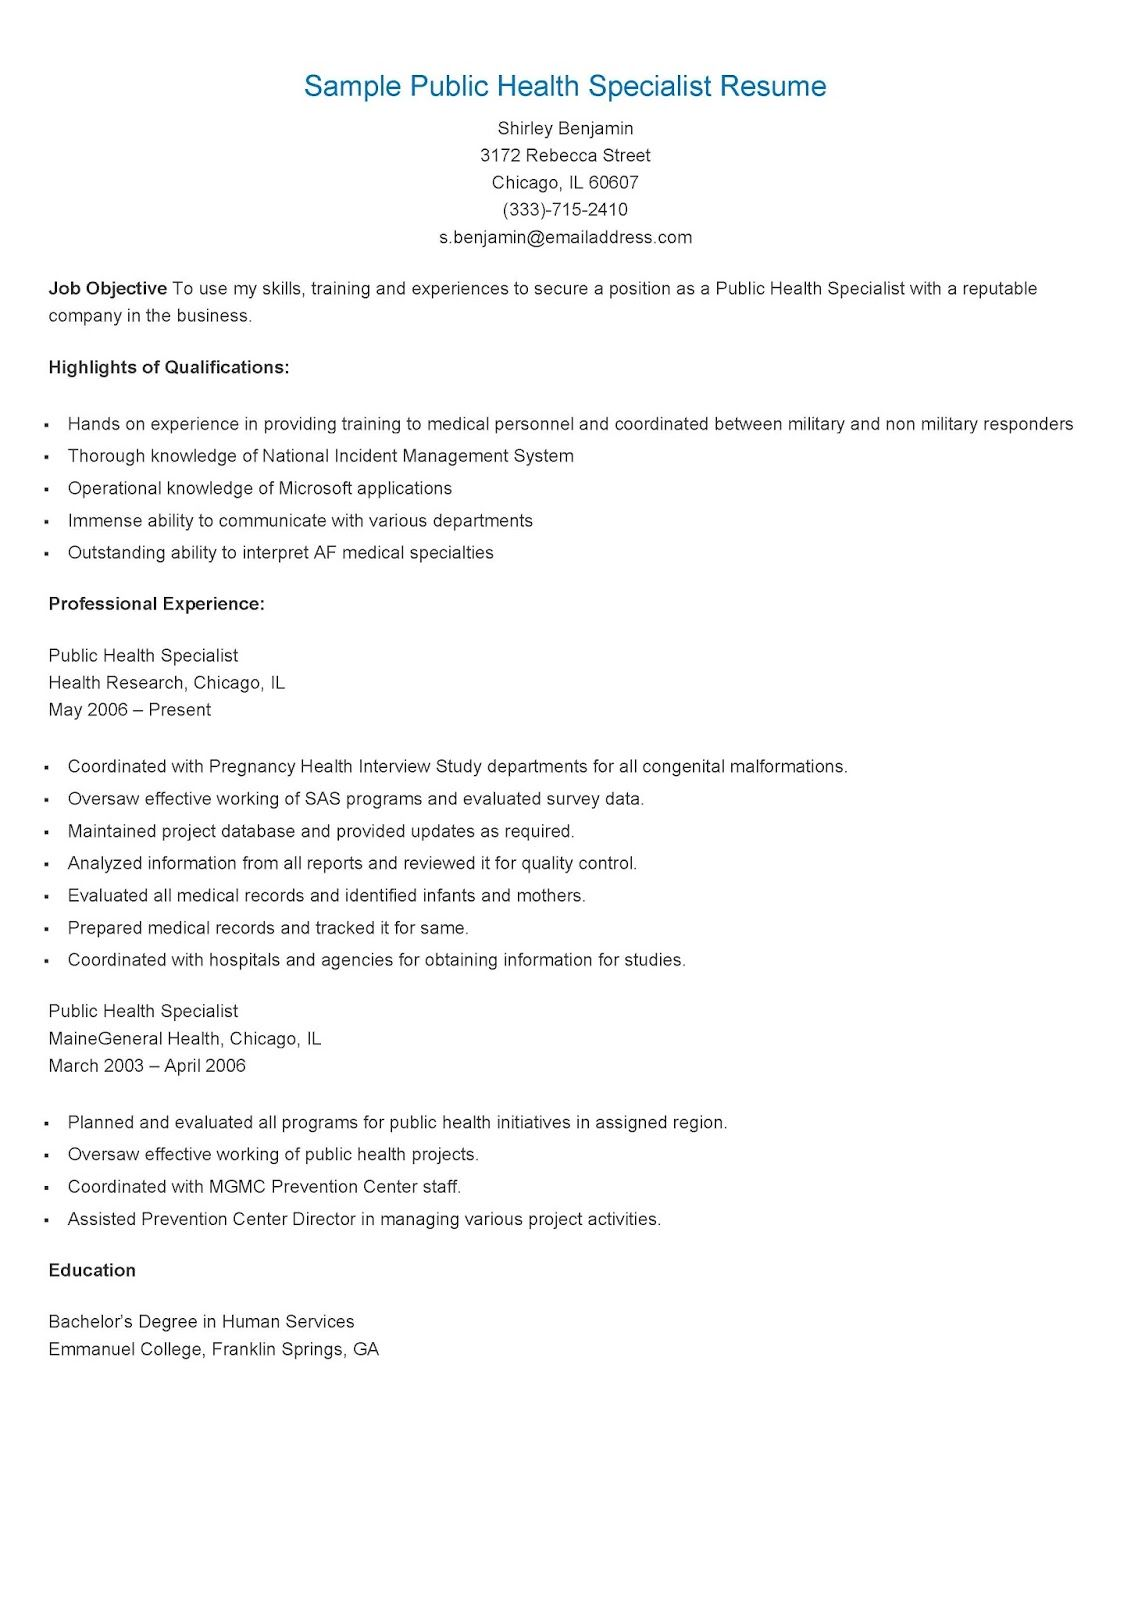 sample public health specialist resume examples jobs for graduate school introduction Resume Resume For Public Health Graduate School